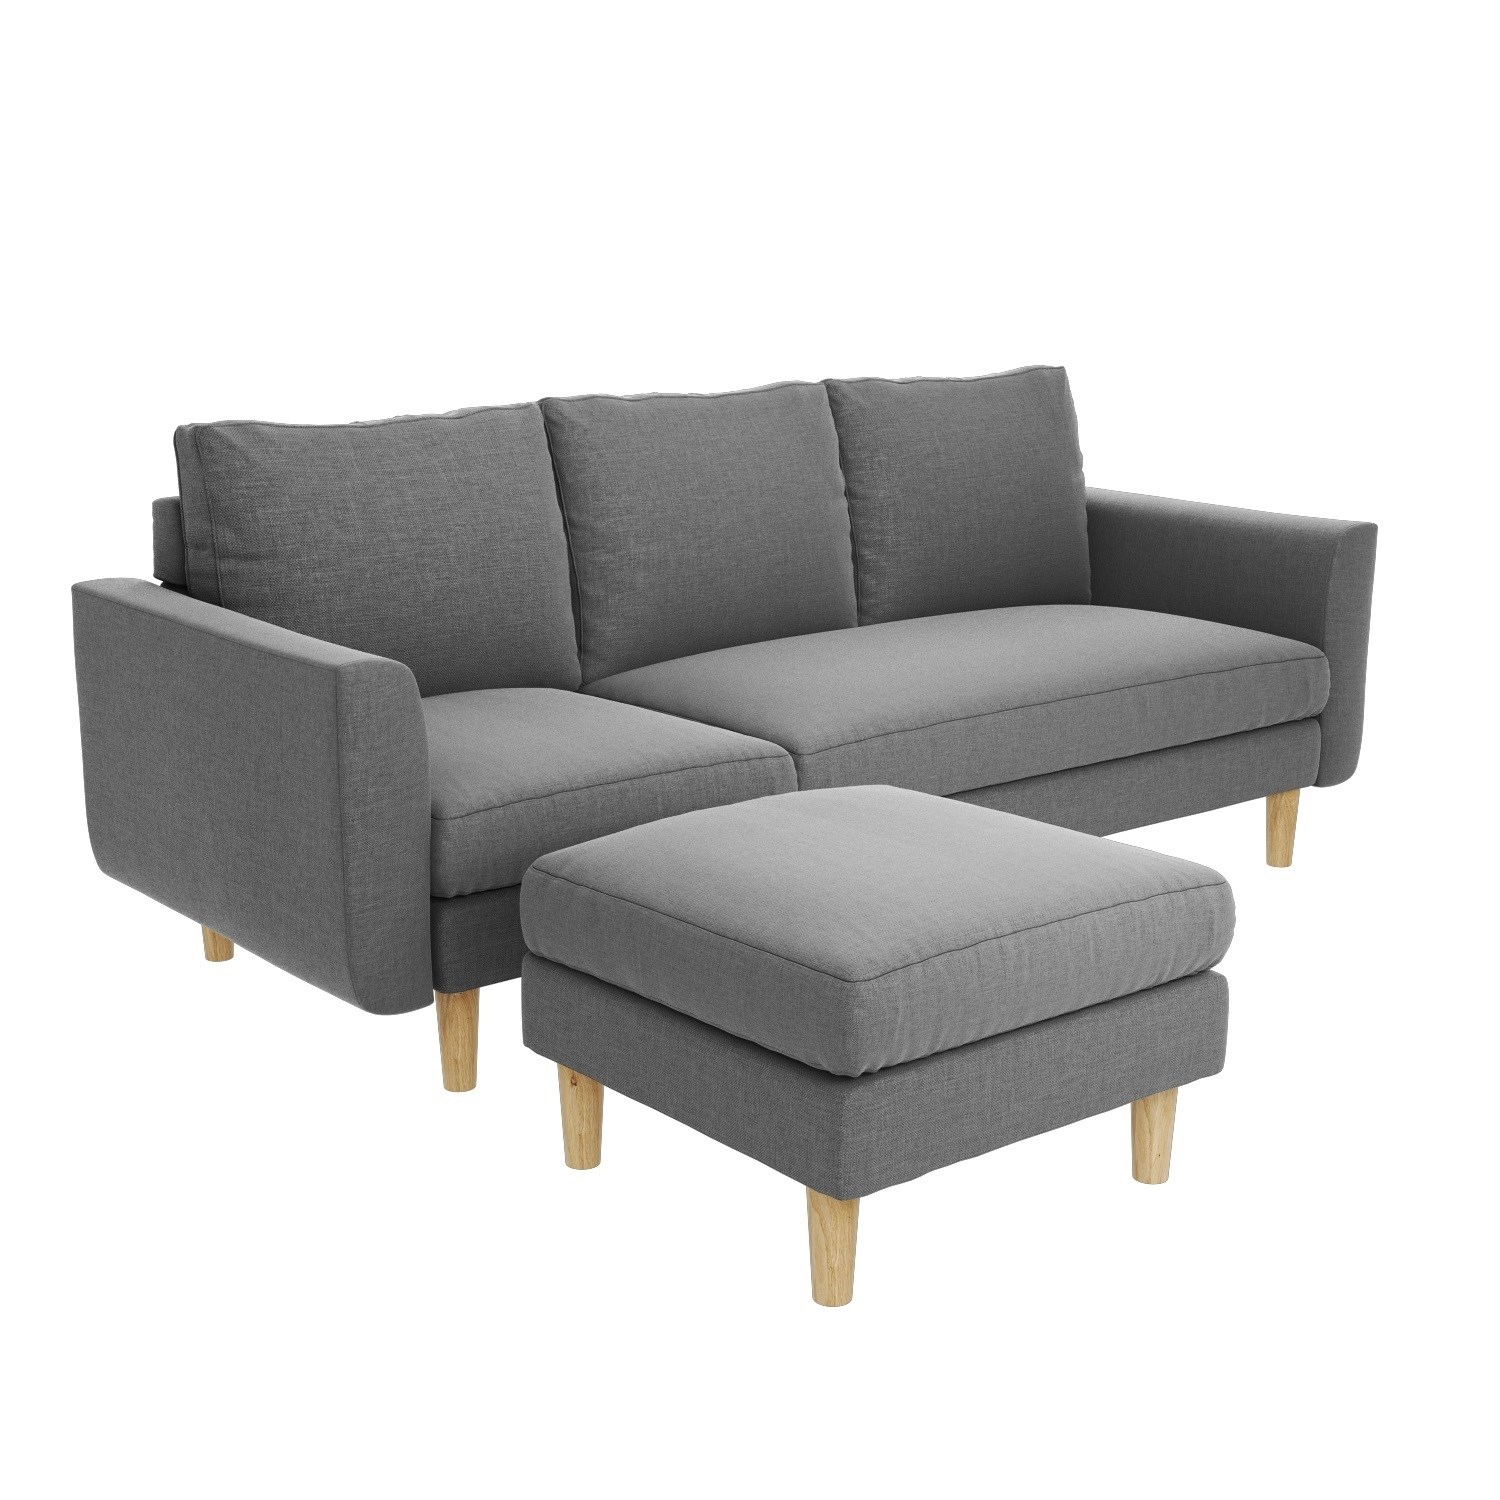 Brooke Light Grey 3 Seater Corner Sofa - Right/Left Hand Chaise